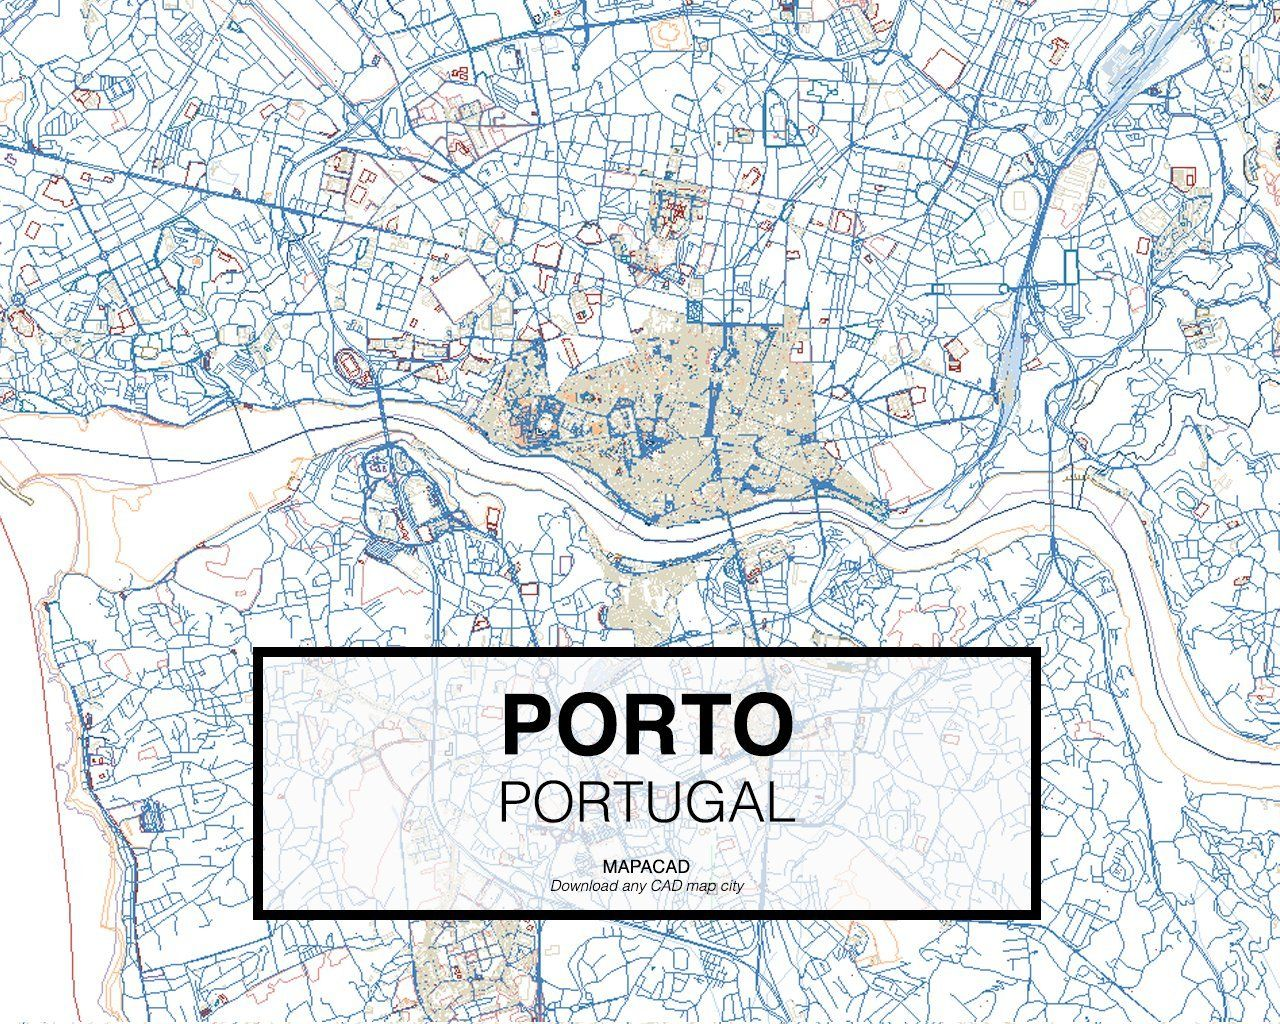 Porto portugal 01 mapacad download map cad dwg dxf autocad free 2d porto portugal 01 mapacad download map cad dwg gumiabroncs Gallery